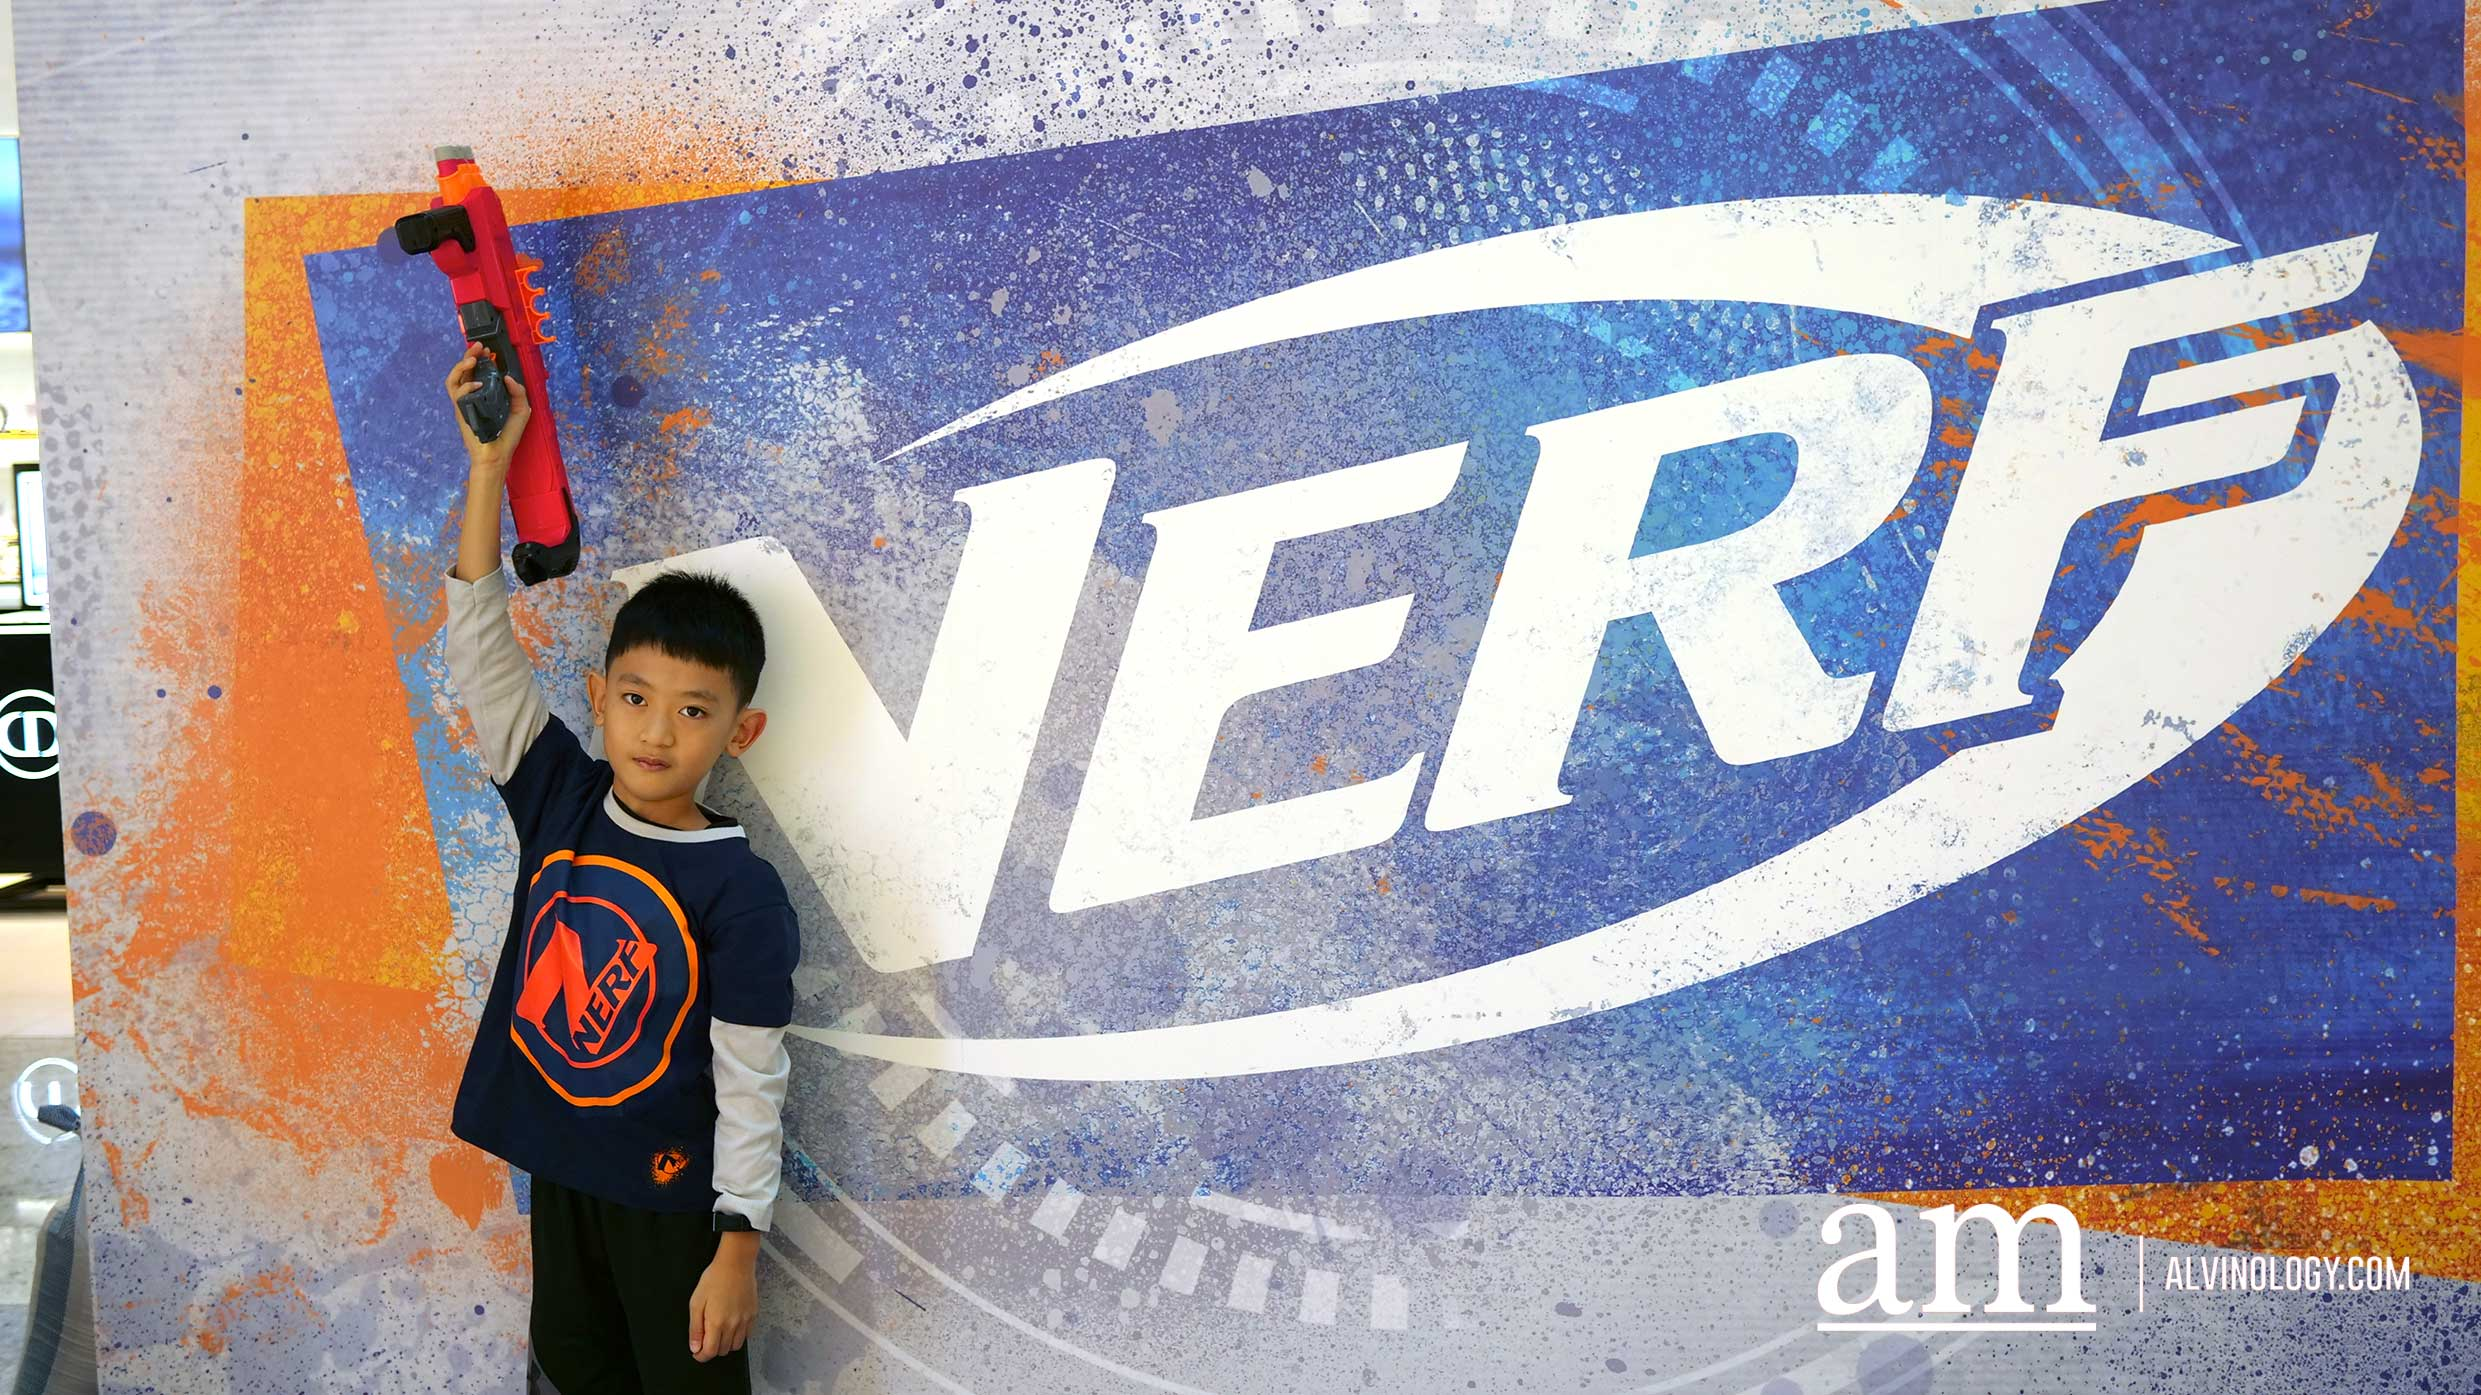 NERF x Robinsons First Ever Pop-up Store in Singapore at Raffles City - Alvinology